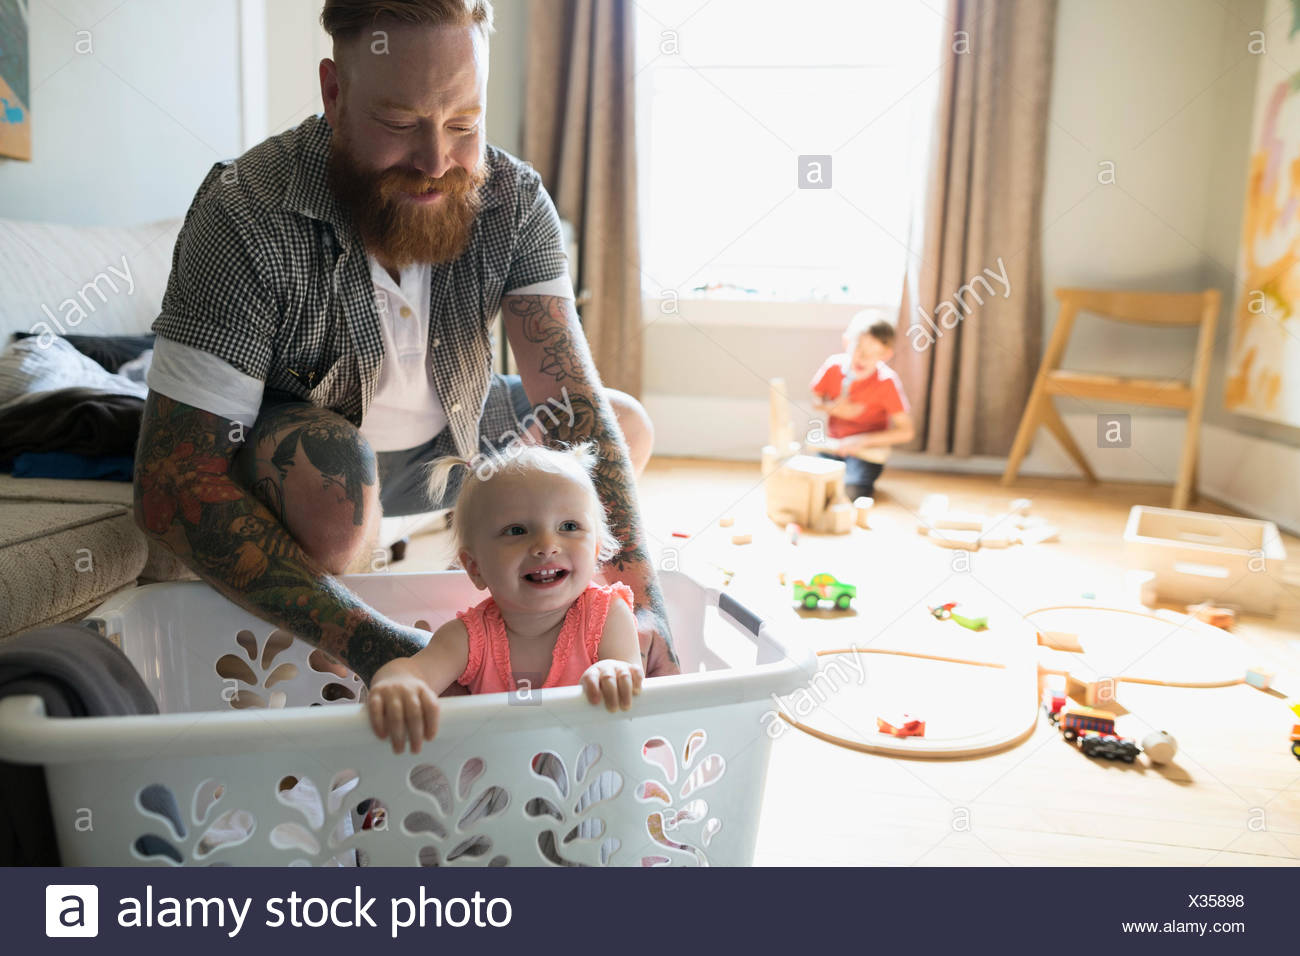 Father with happy daughter inside laundry basket - Stock Image